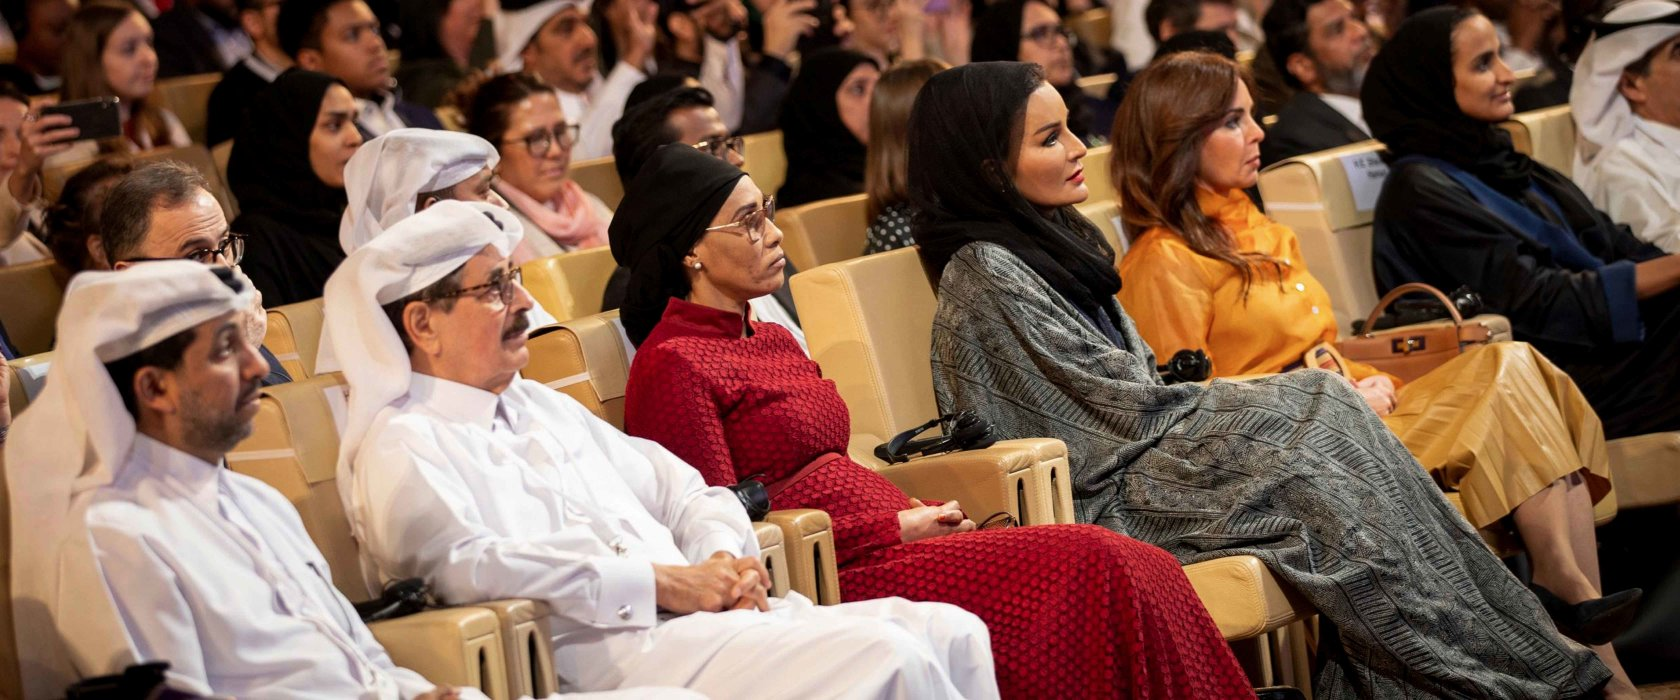 Her Highness Sheikha Moza bint Nasser attends closing ceremony of WISE Summit 2019